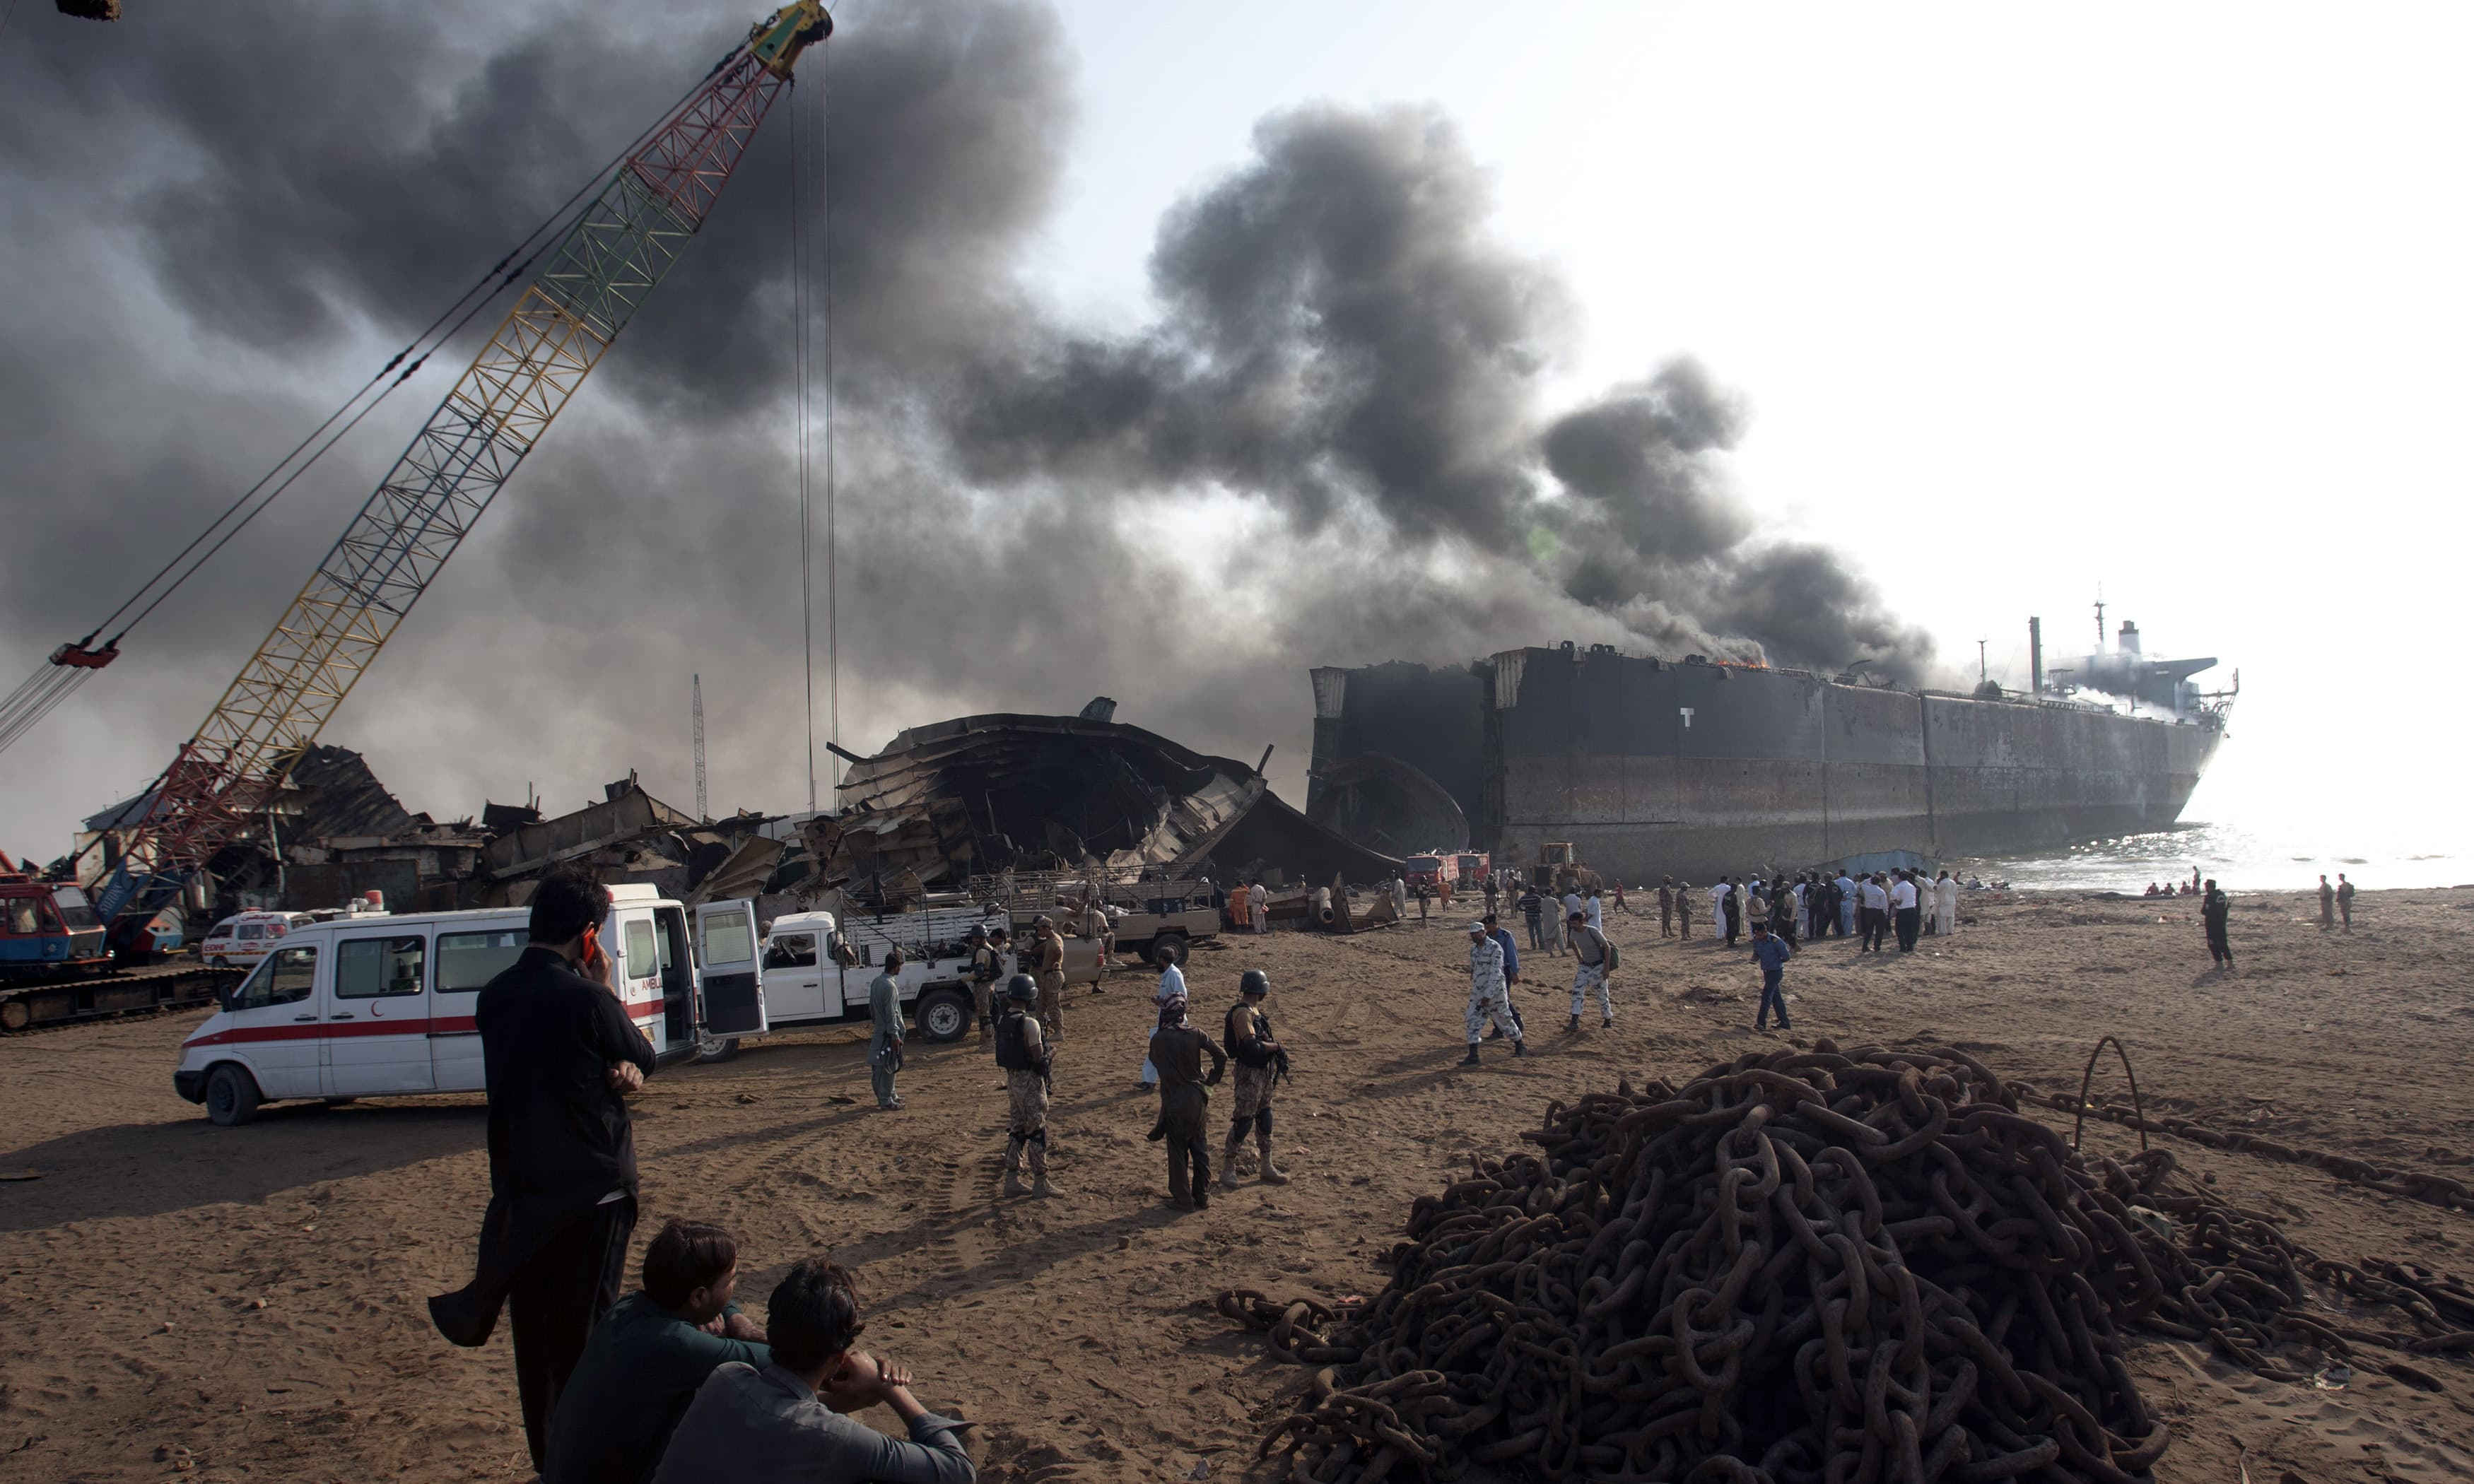 People look at a ship on fire following an explosion in Gadani. —AP